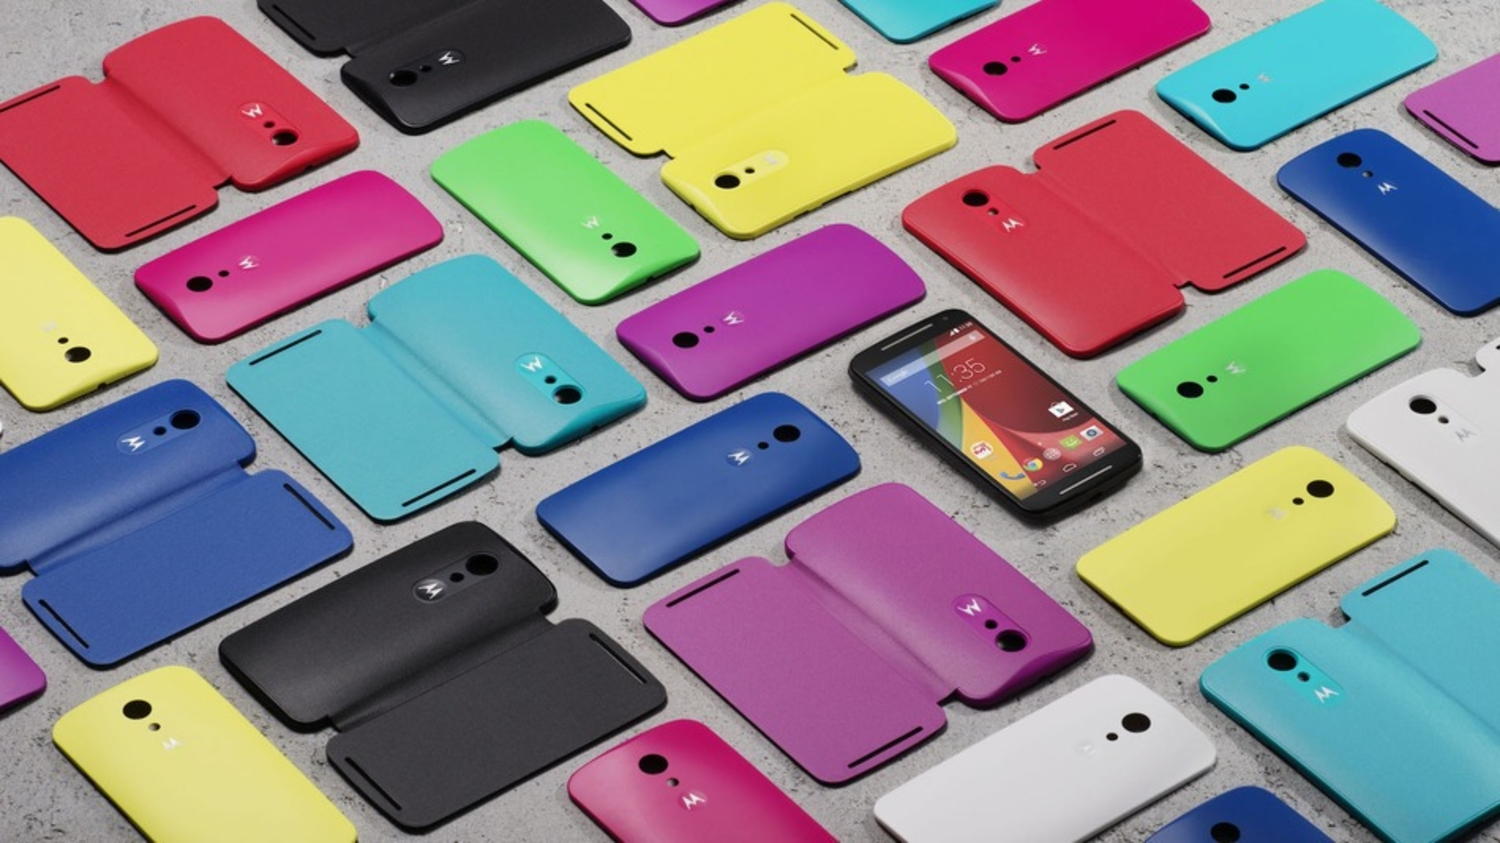 The Moto G Will Now Be Completely Unique